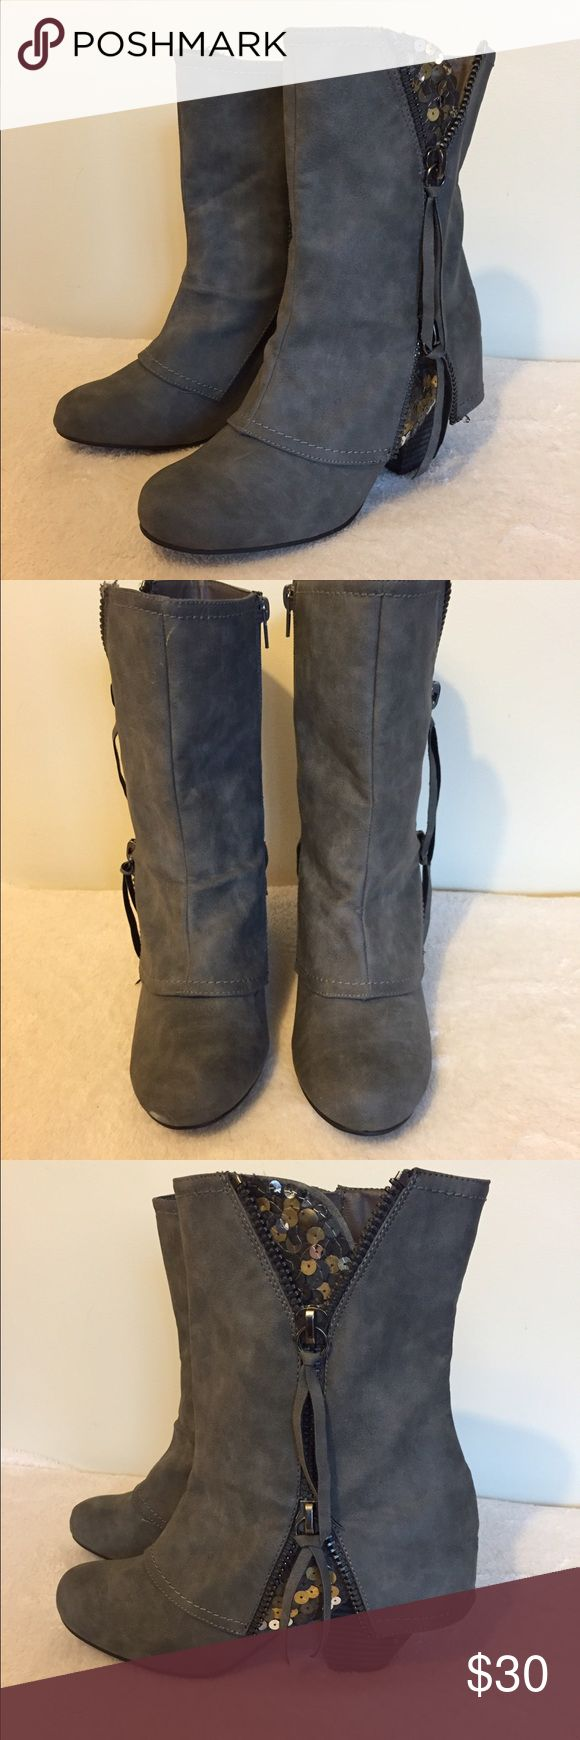 Grey Leather Boots with Gold Sequence Cute and Adorable Boots! Only worn once, small scuff on the front of the right boot Not Rated Shoes Heeled Boots